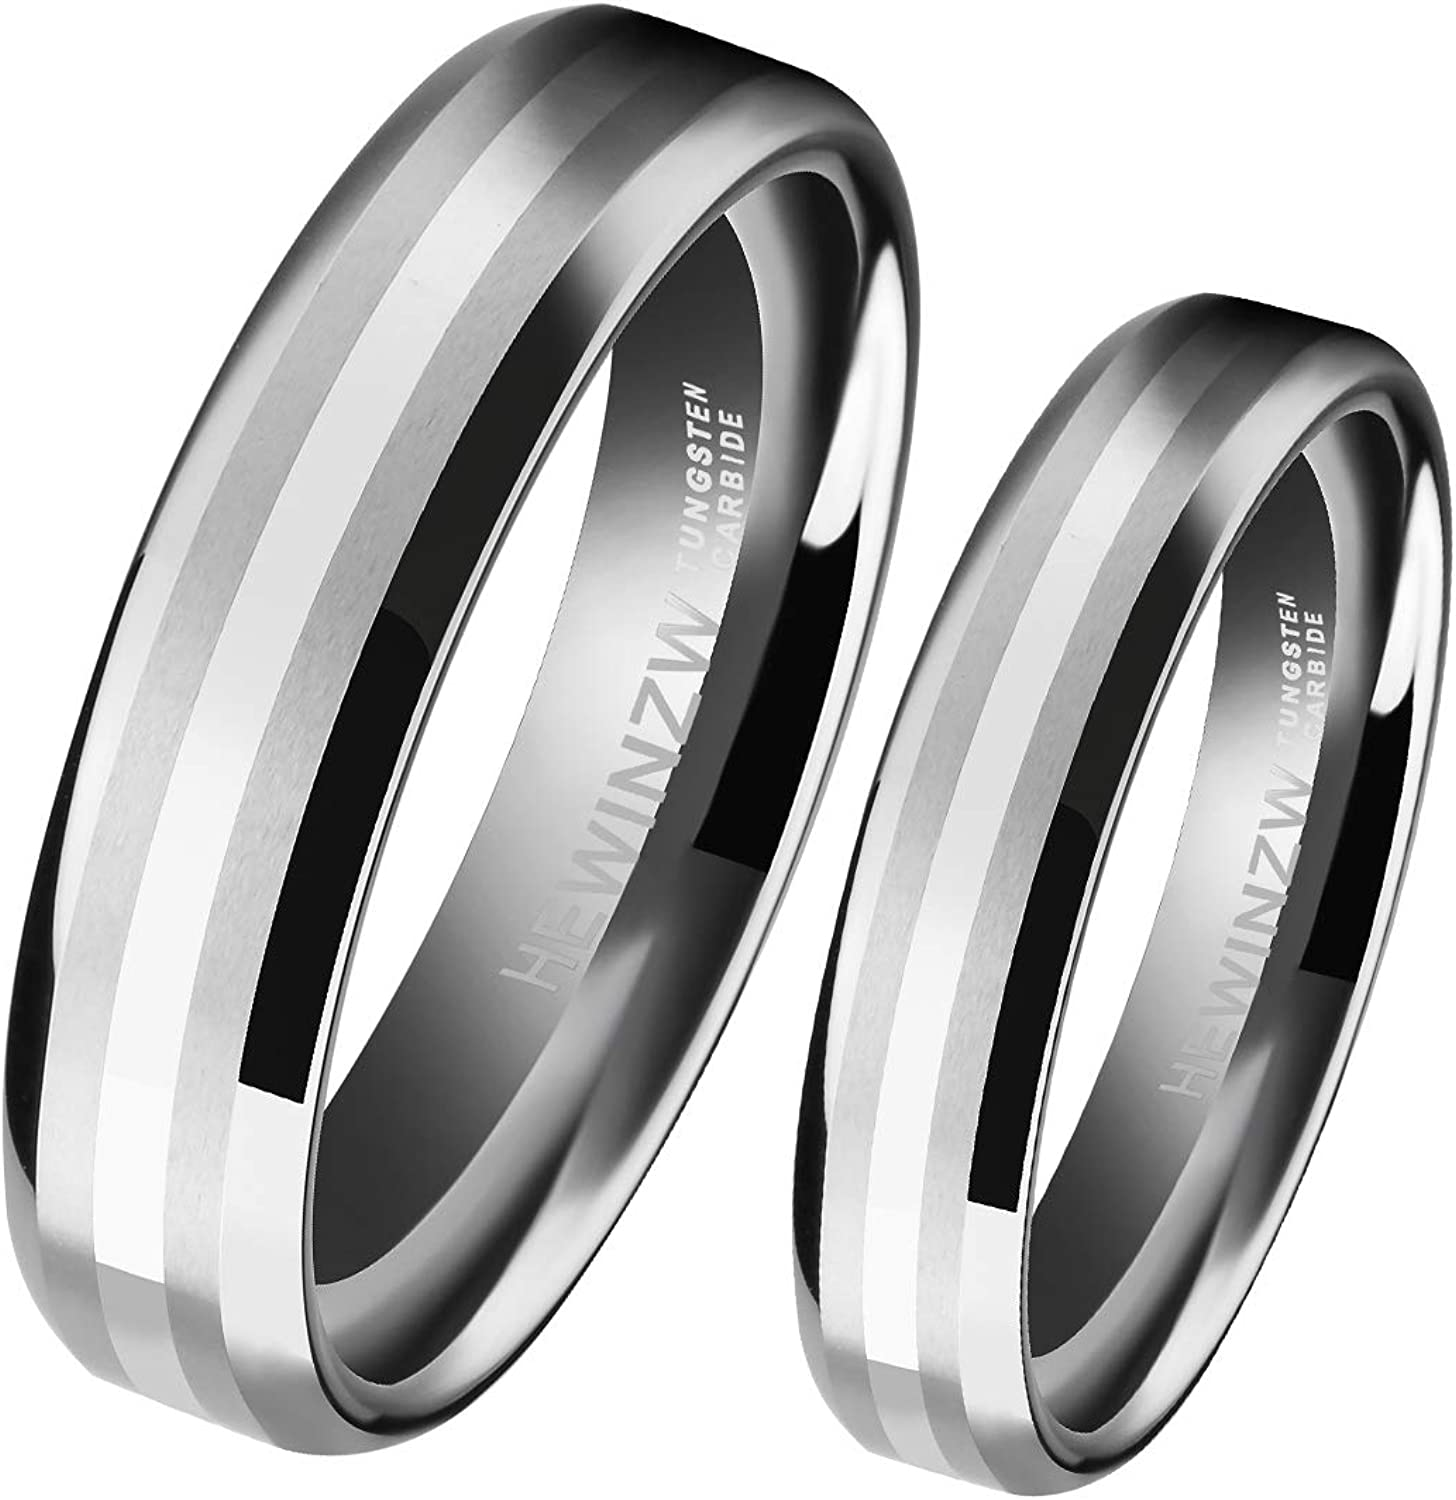 Max 53% OFF HEWINZW Tungsten Rings Limited price sale for His and 14k Her 8mm Center Inlaid 6mm